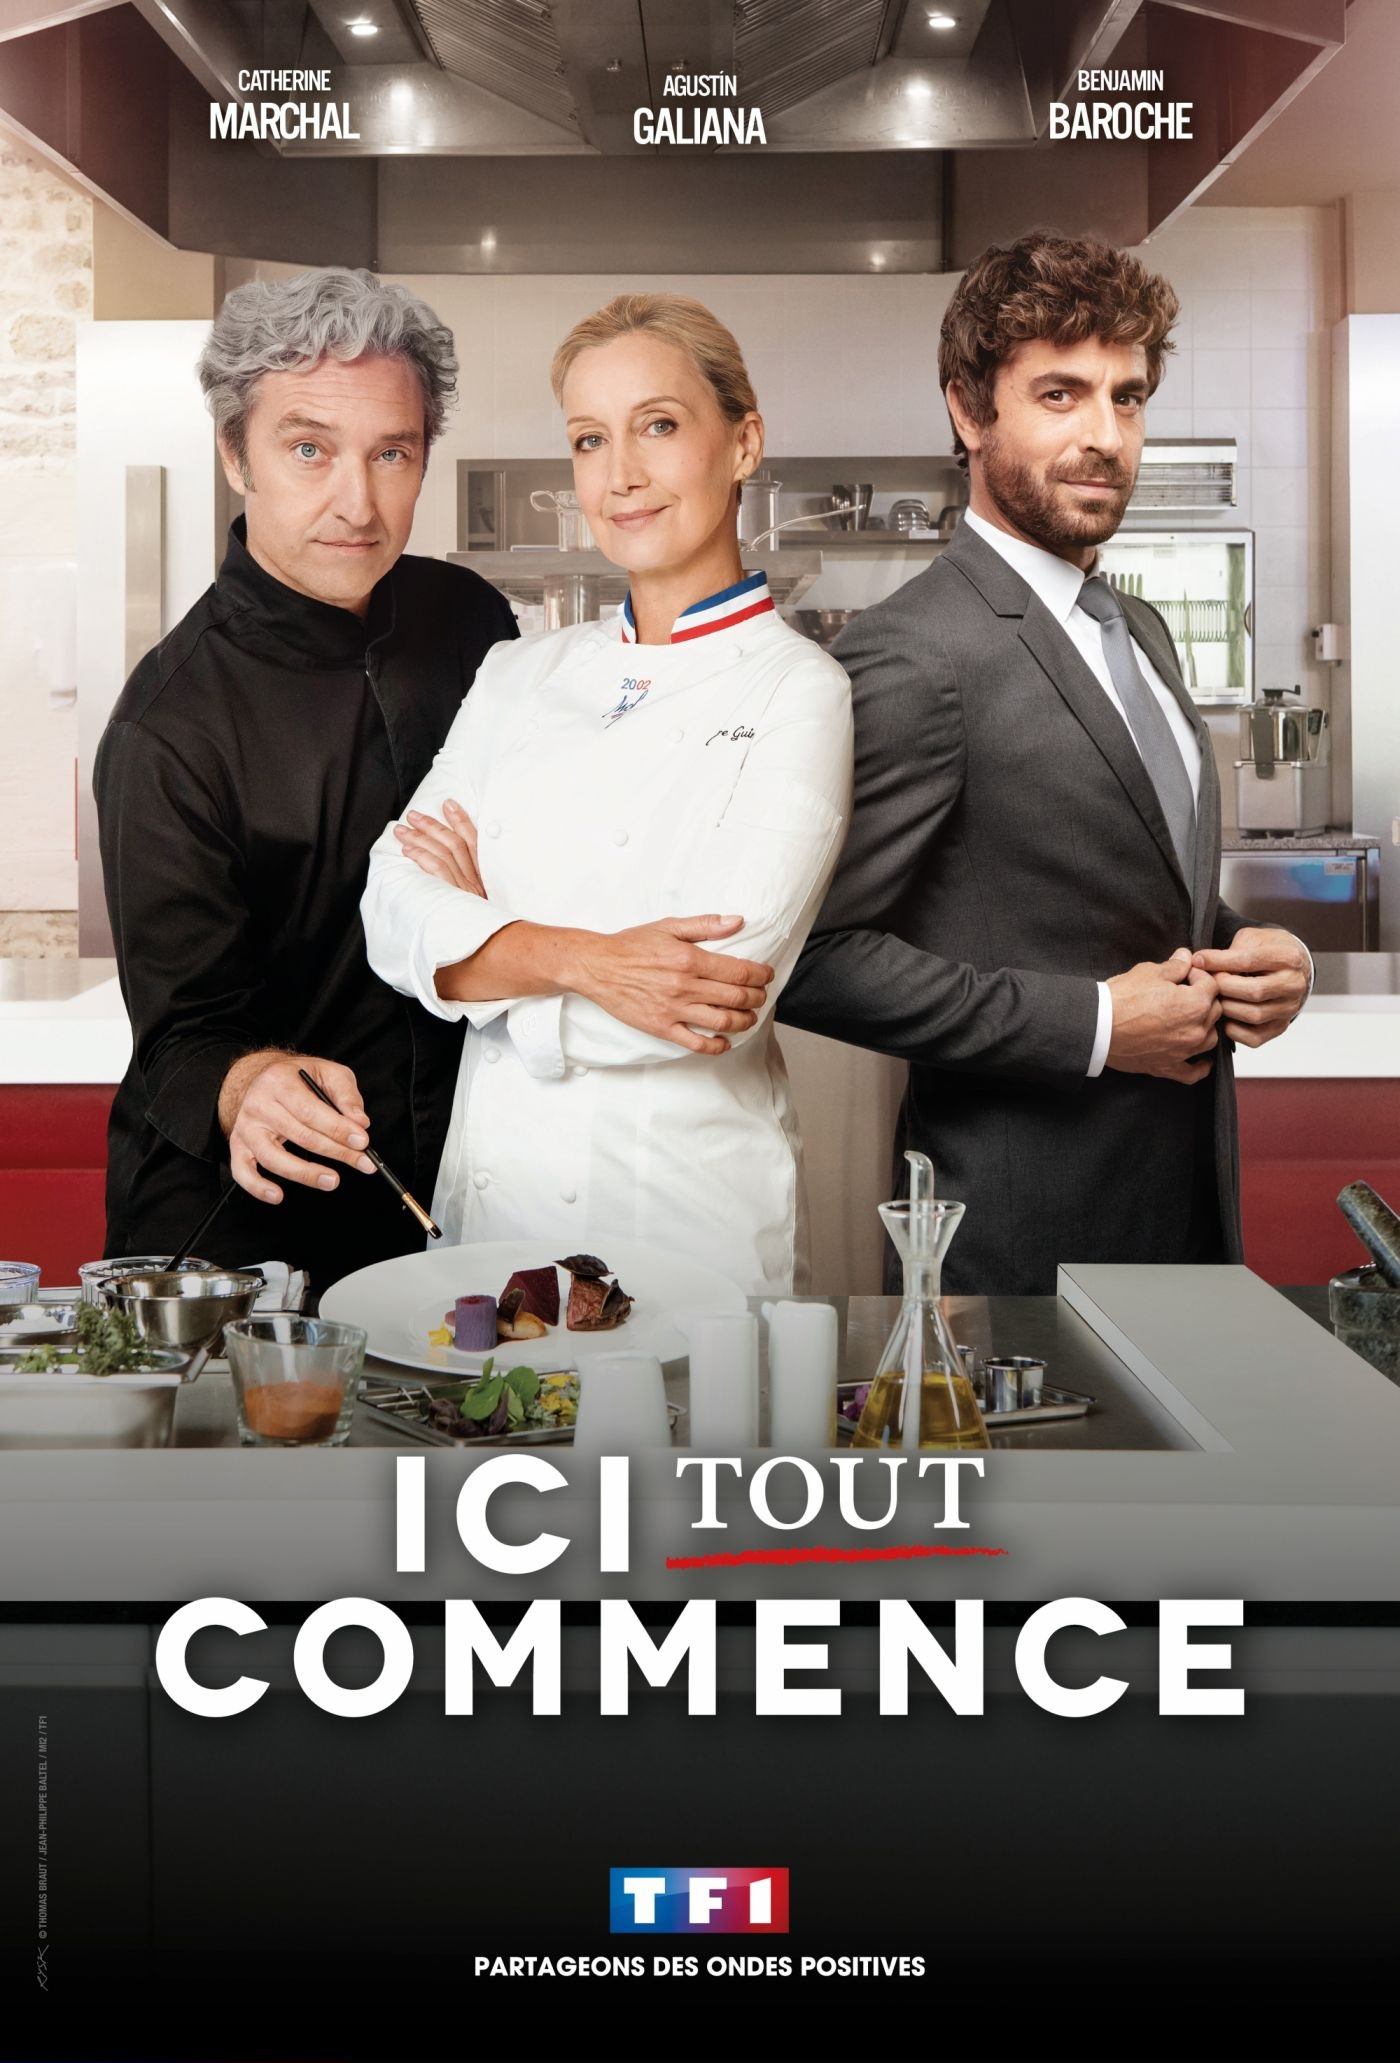 Catherine Marchal, Benjamin Baroche, and Agustín Galiana in Ici Tout Commence (2020)